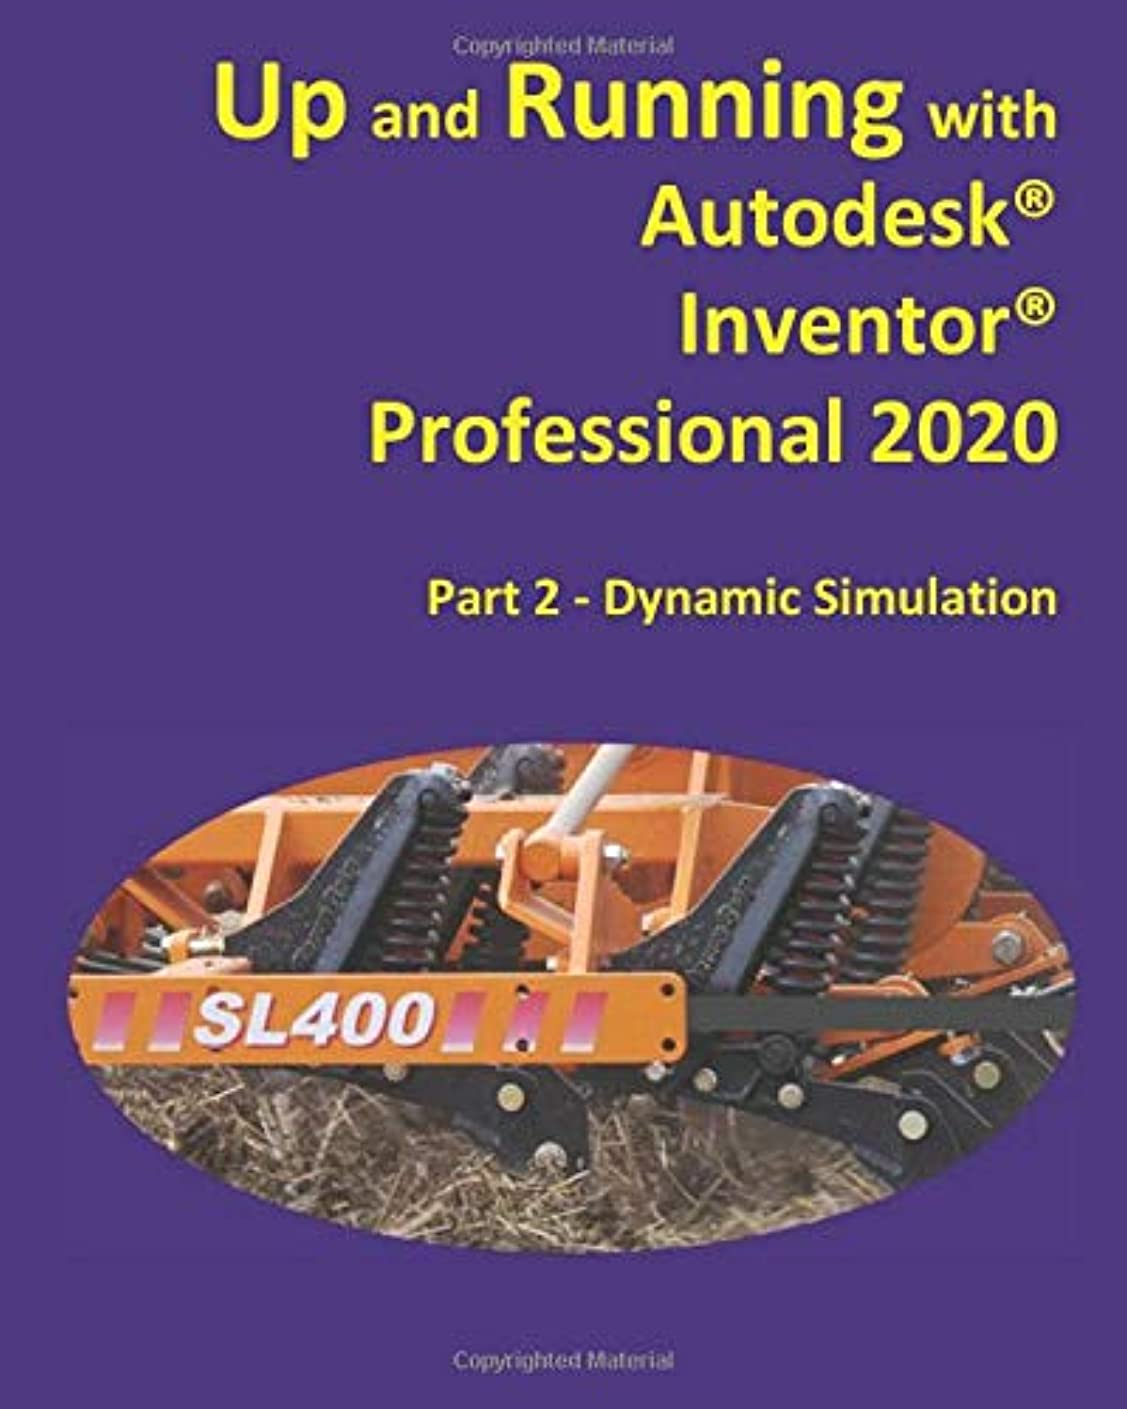 ジャンプ暫定のエスカレーターUp and Running with Autodesk Inventor Professional 2020: Part 2 -  Dynamic Simulation